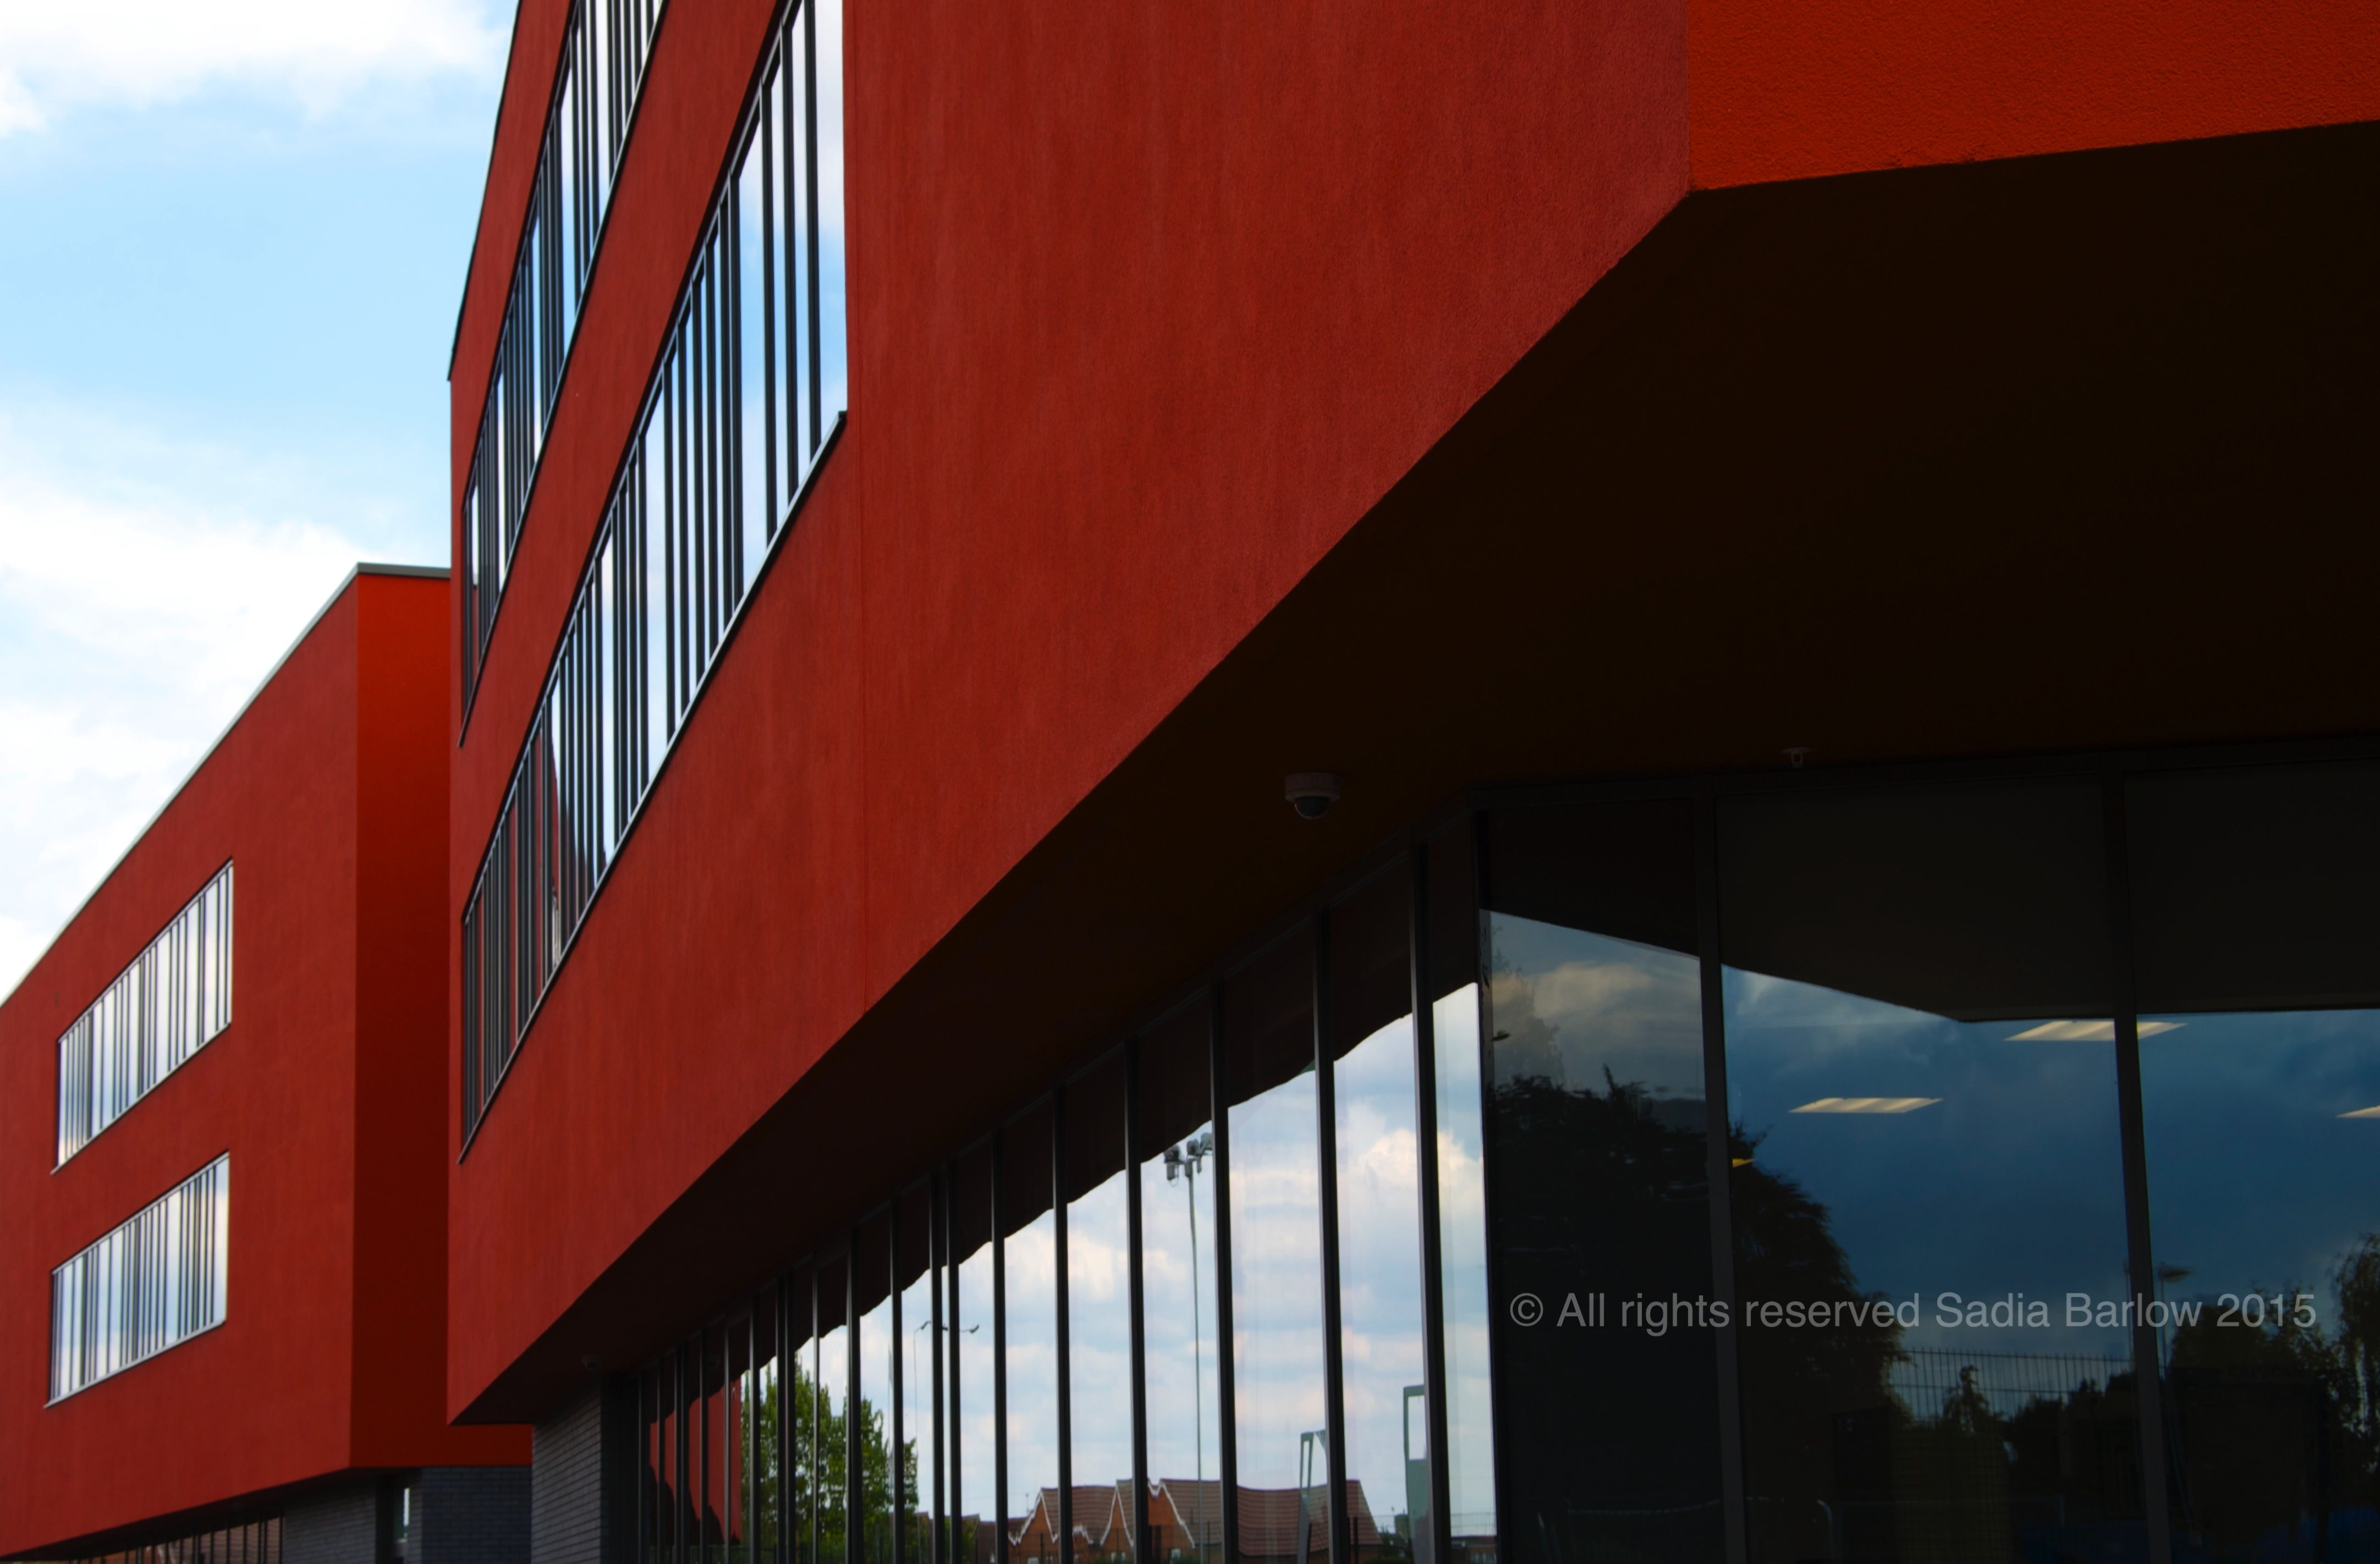 A new red building